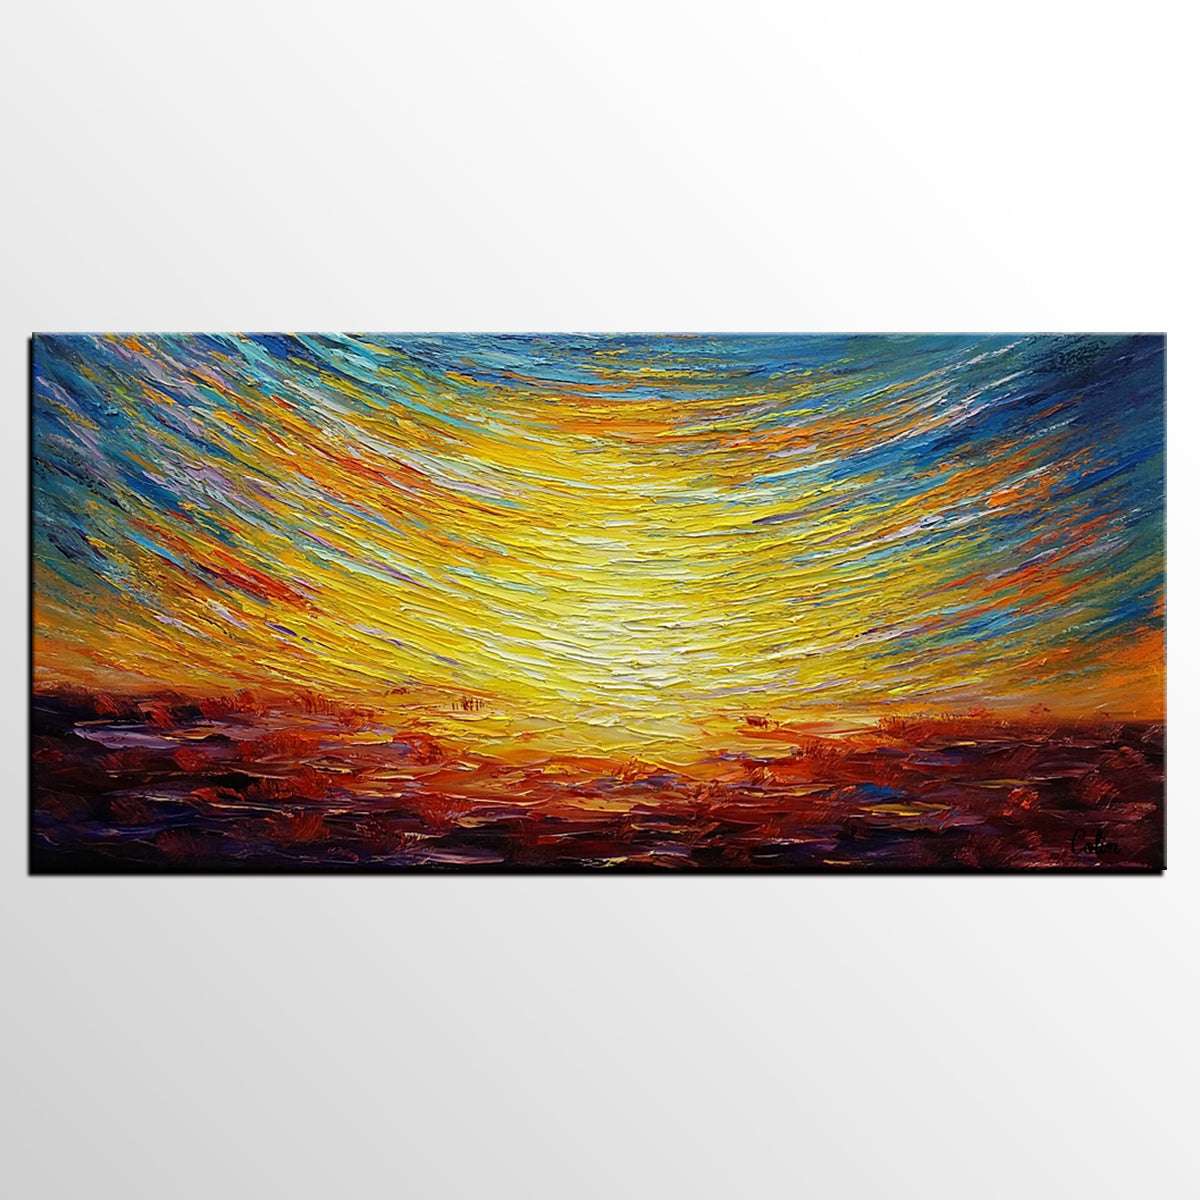 Abstract Painting, Landscape Painting, Abstract Artwork, Canvas Painting, Oil Painting